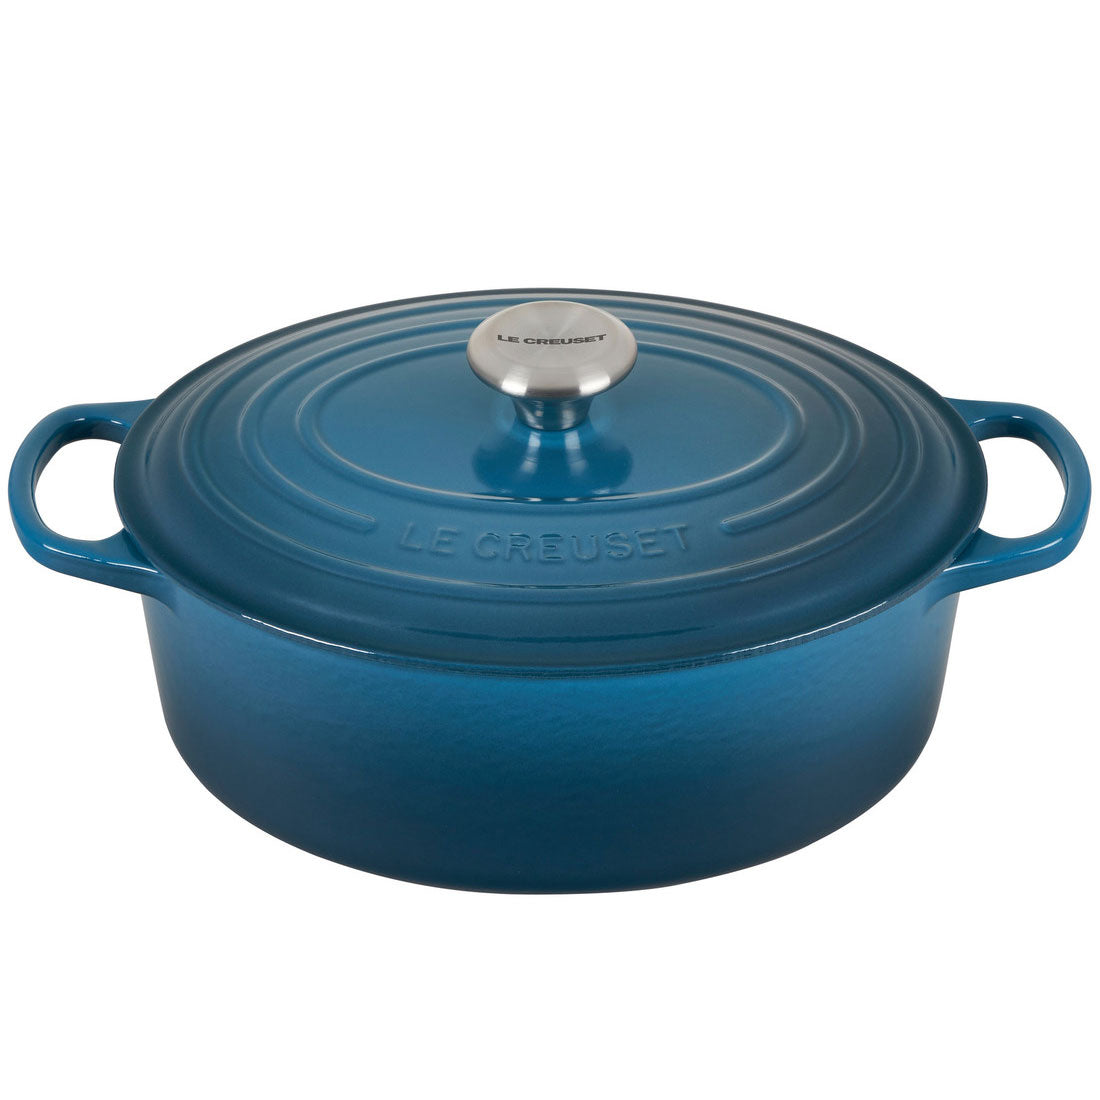 Le Creuset Signature 5 Quart Oval Enameled Cast Iron Dutch Oven - Deep Teal